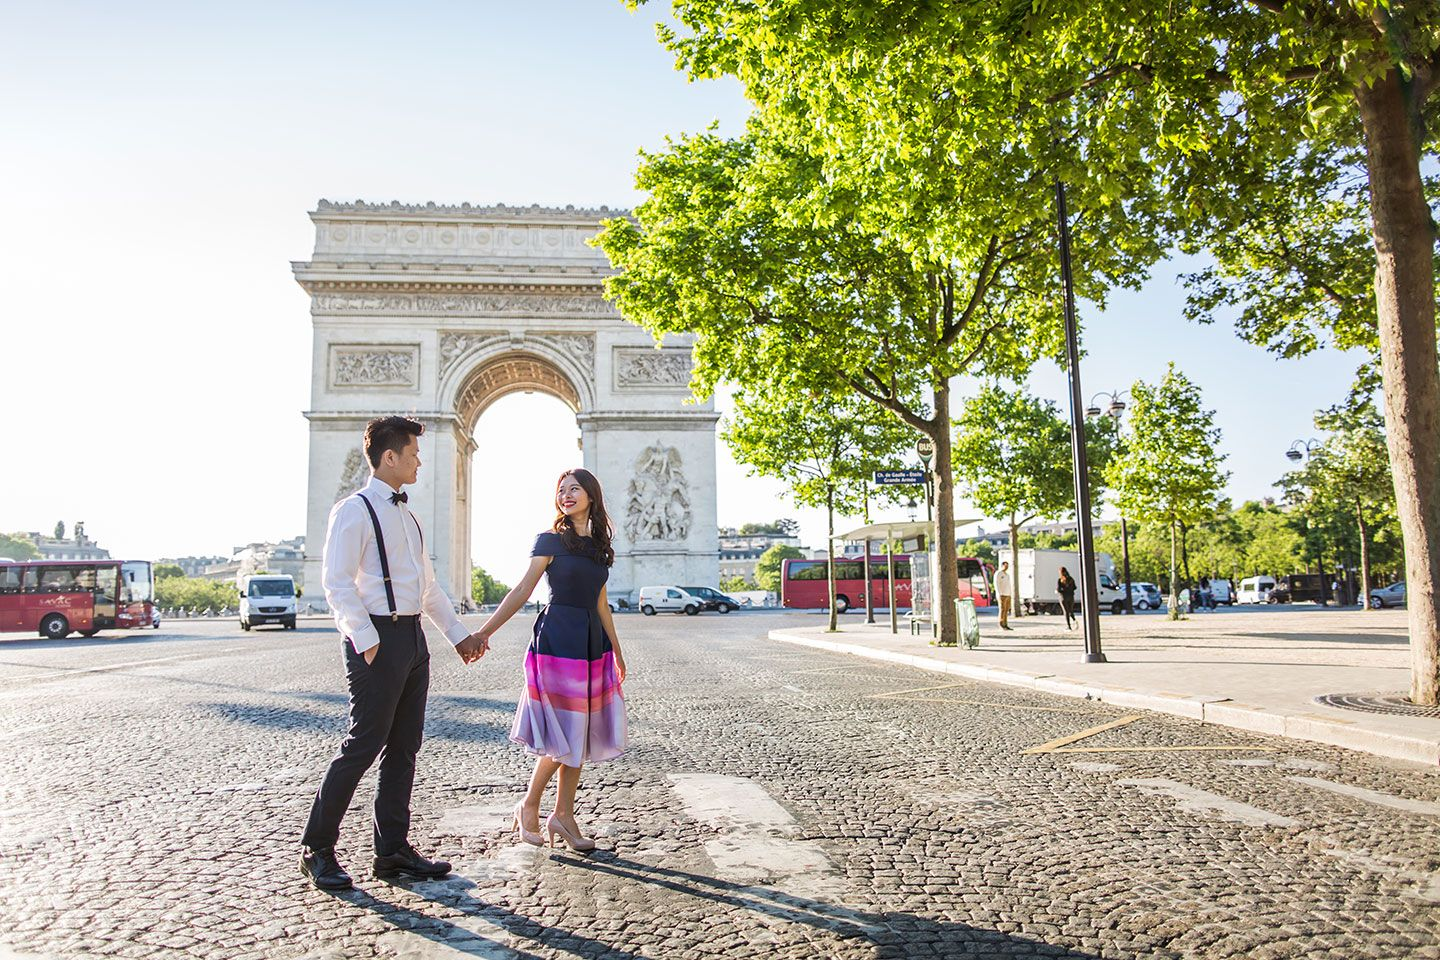 Pre wedding photography in Paris, France by prewedding photographer Dario Endara available in Paris, Amsterdam, Rome, Venice, Prague and other European cities